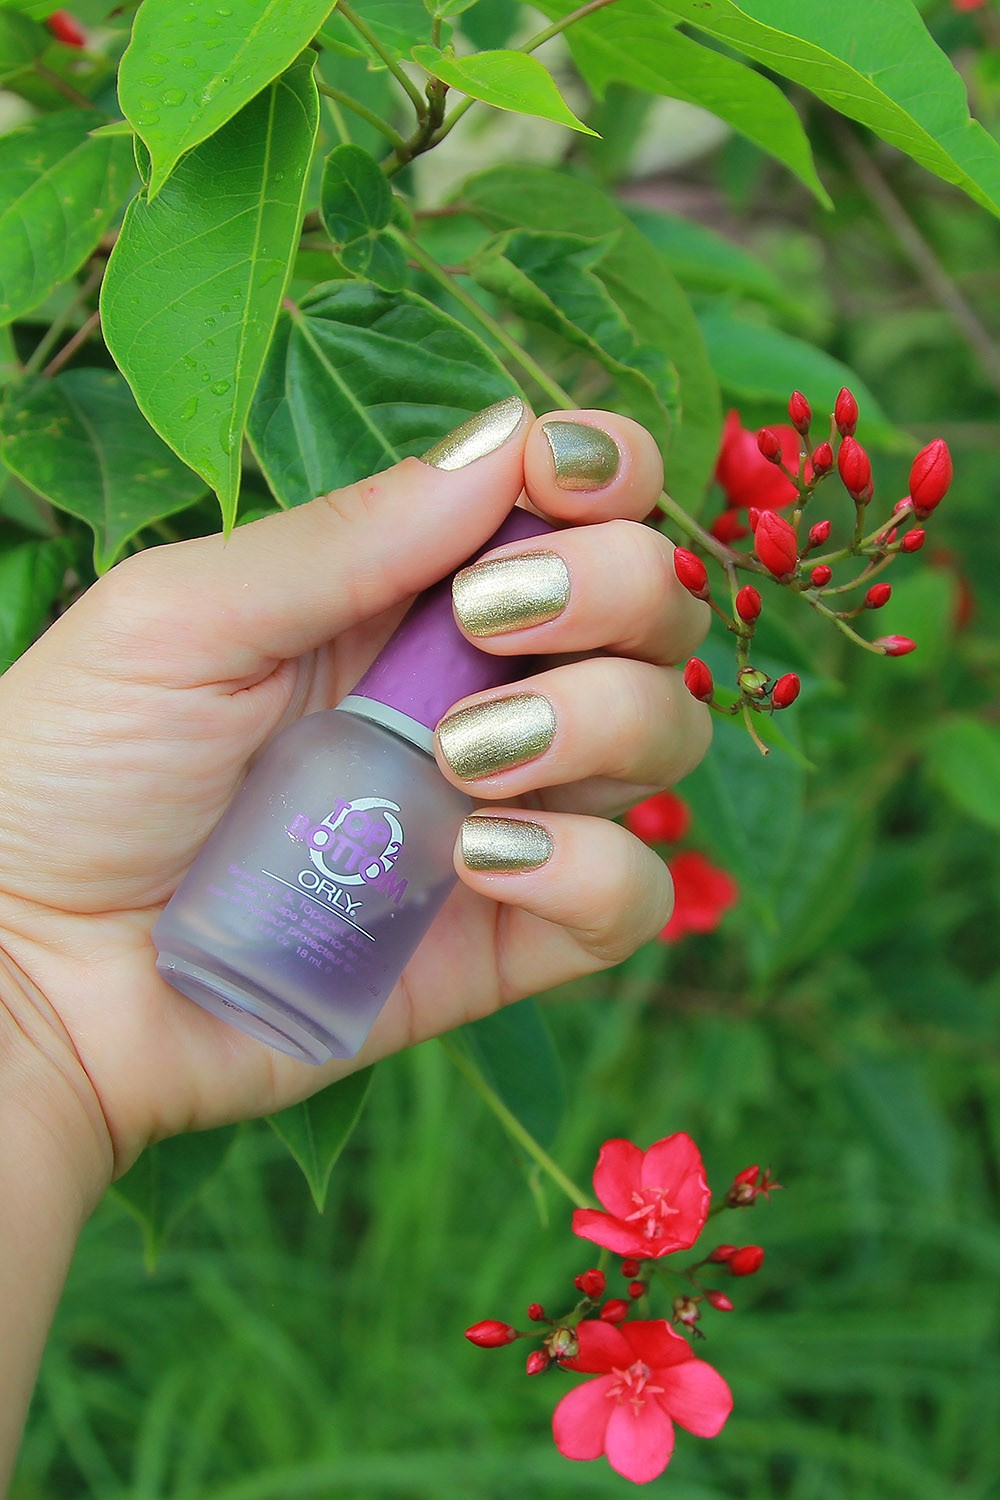 Orly Buried Treasure Lacquer